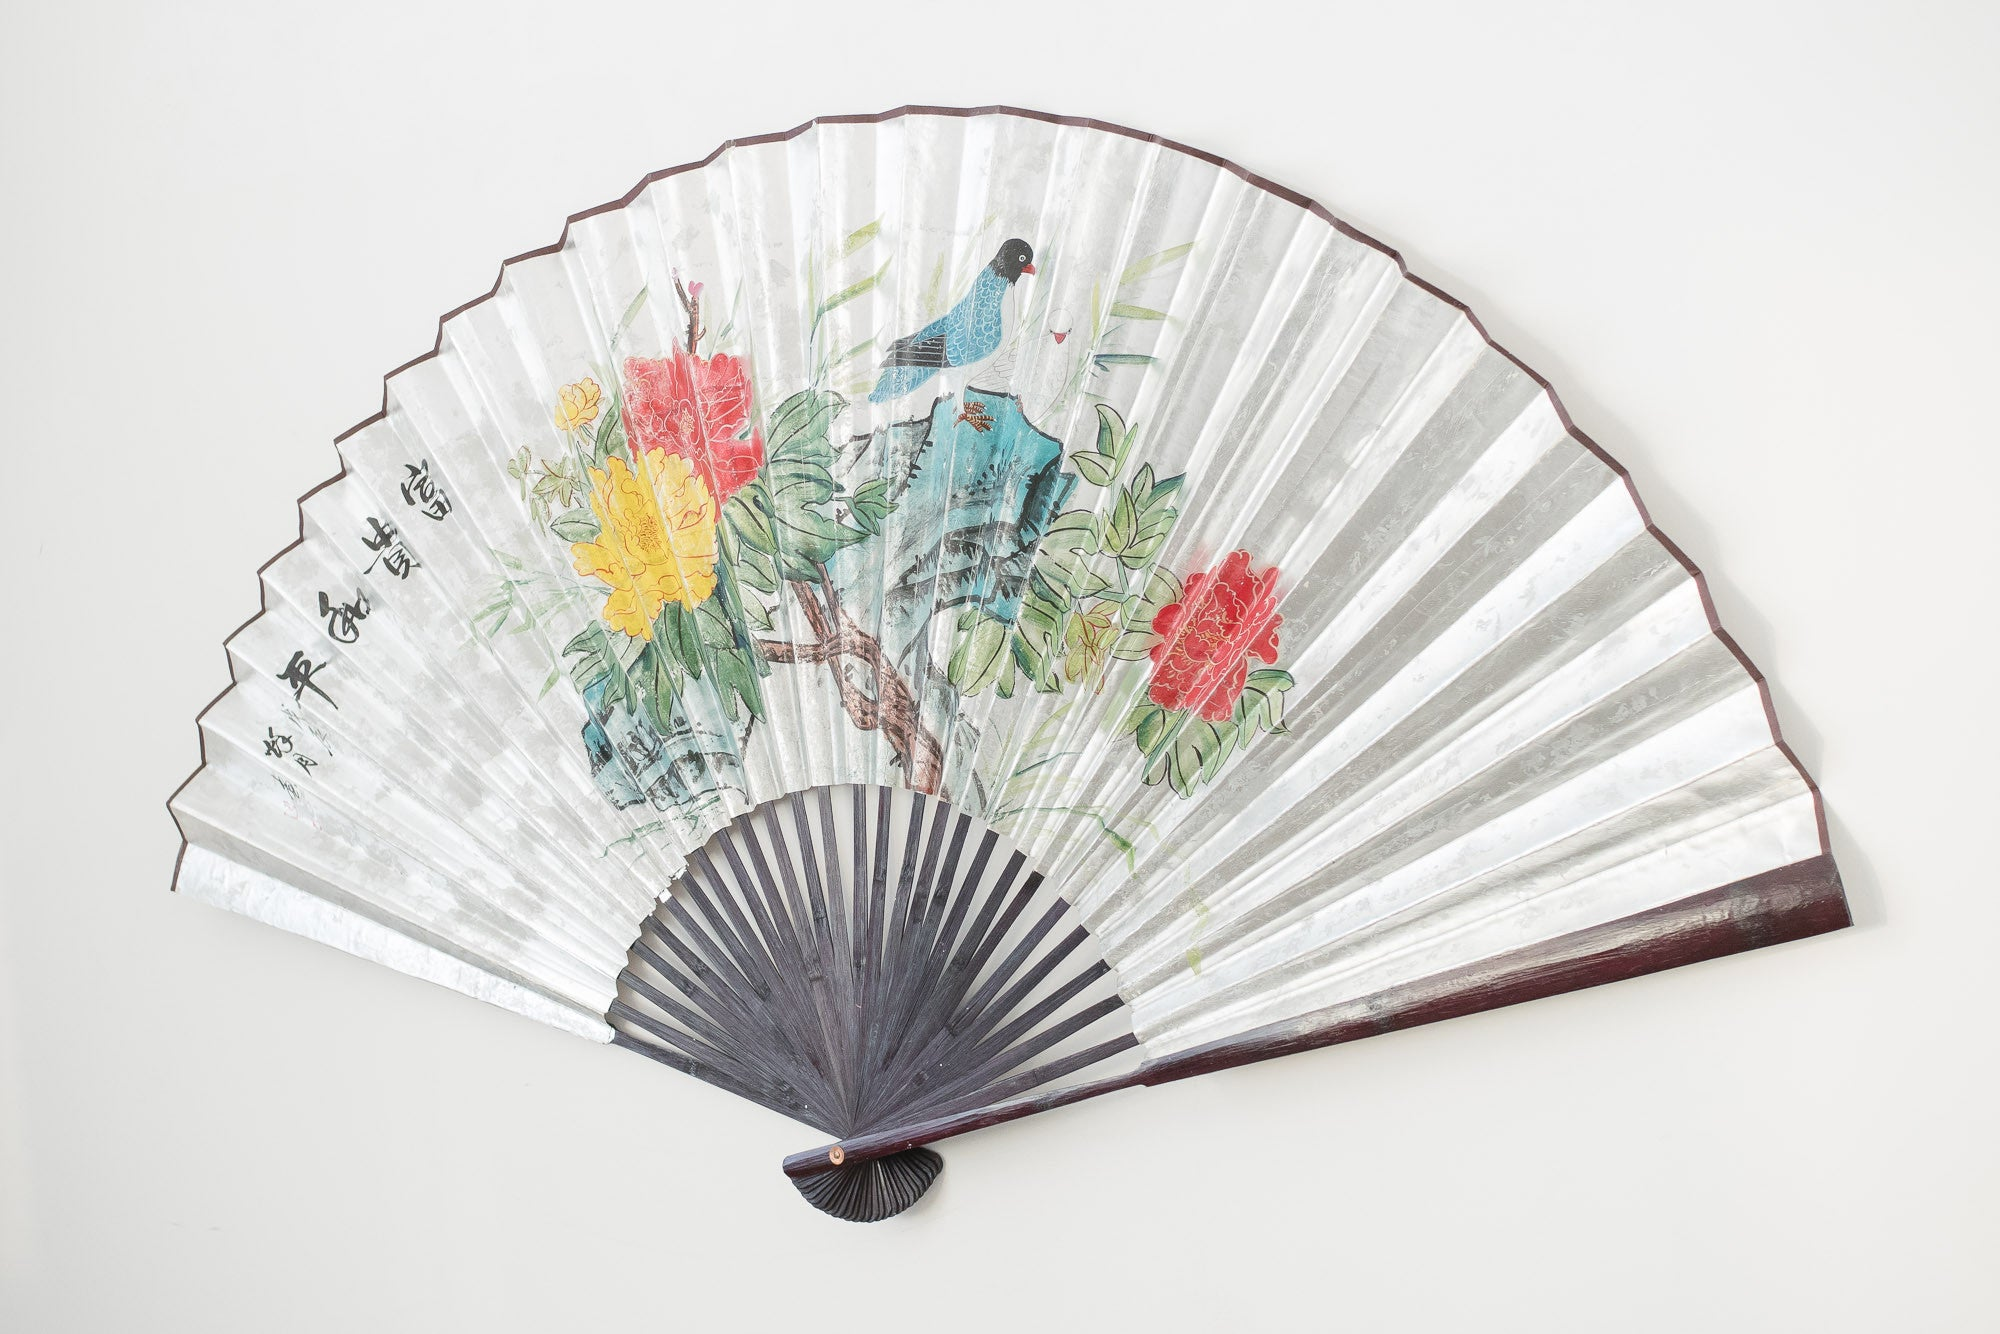 Decorative Wall Fans japanese wall fan | homestead seattle